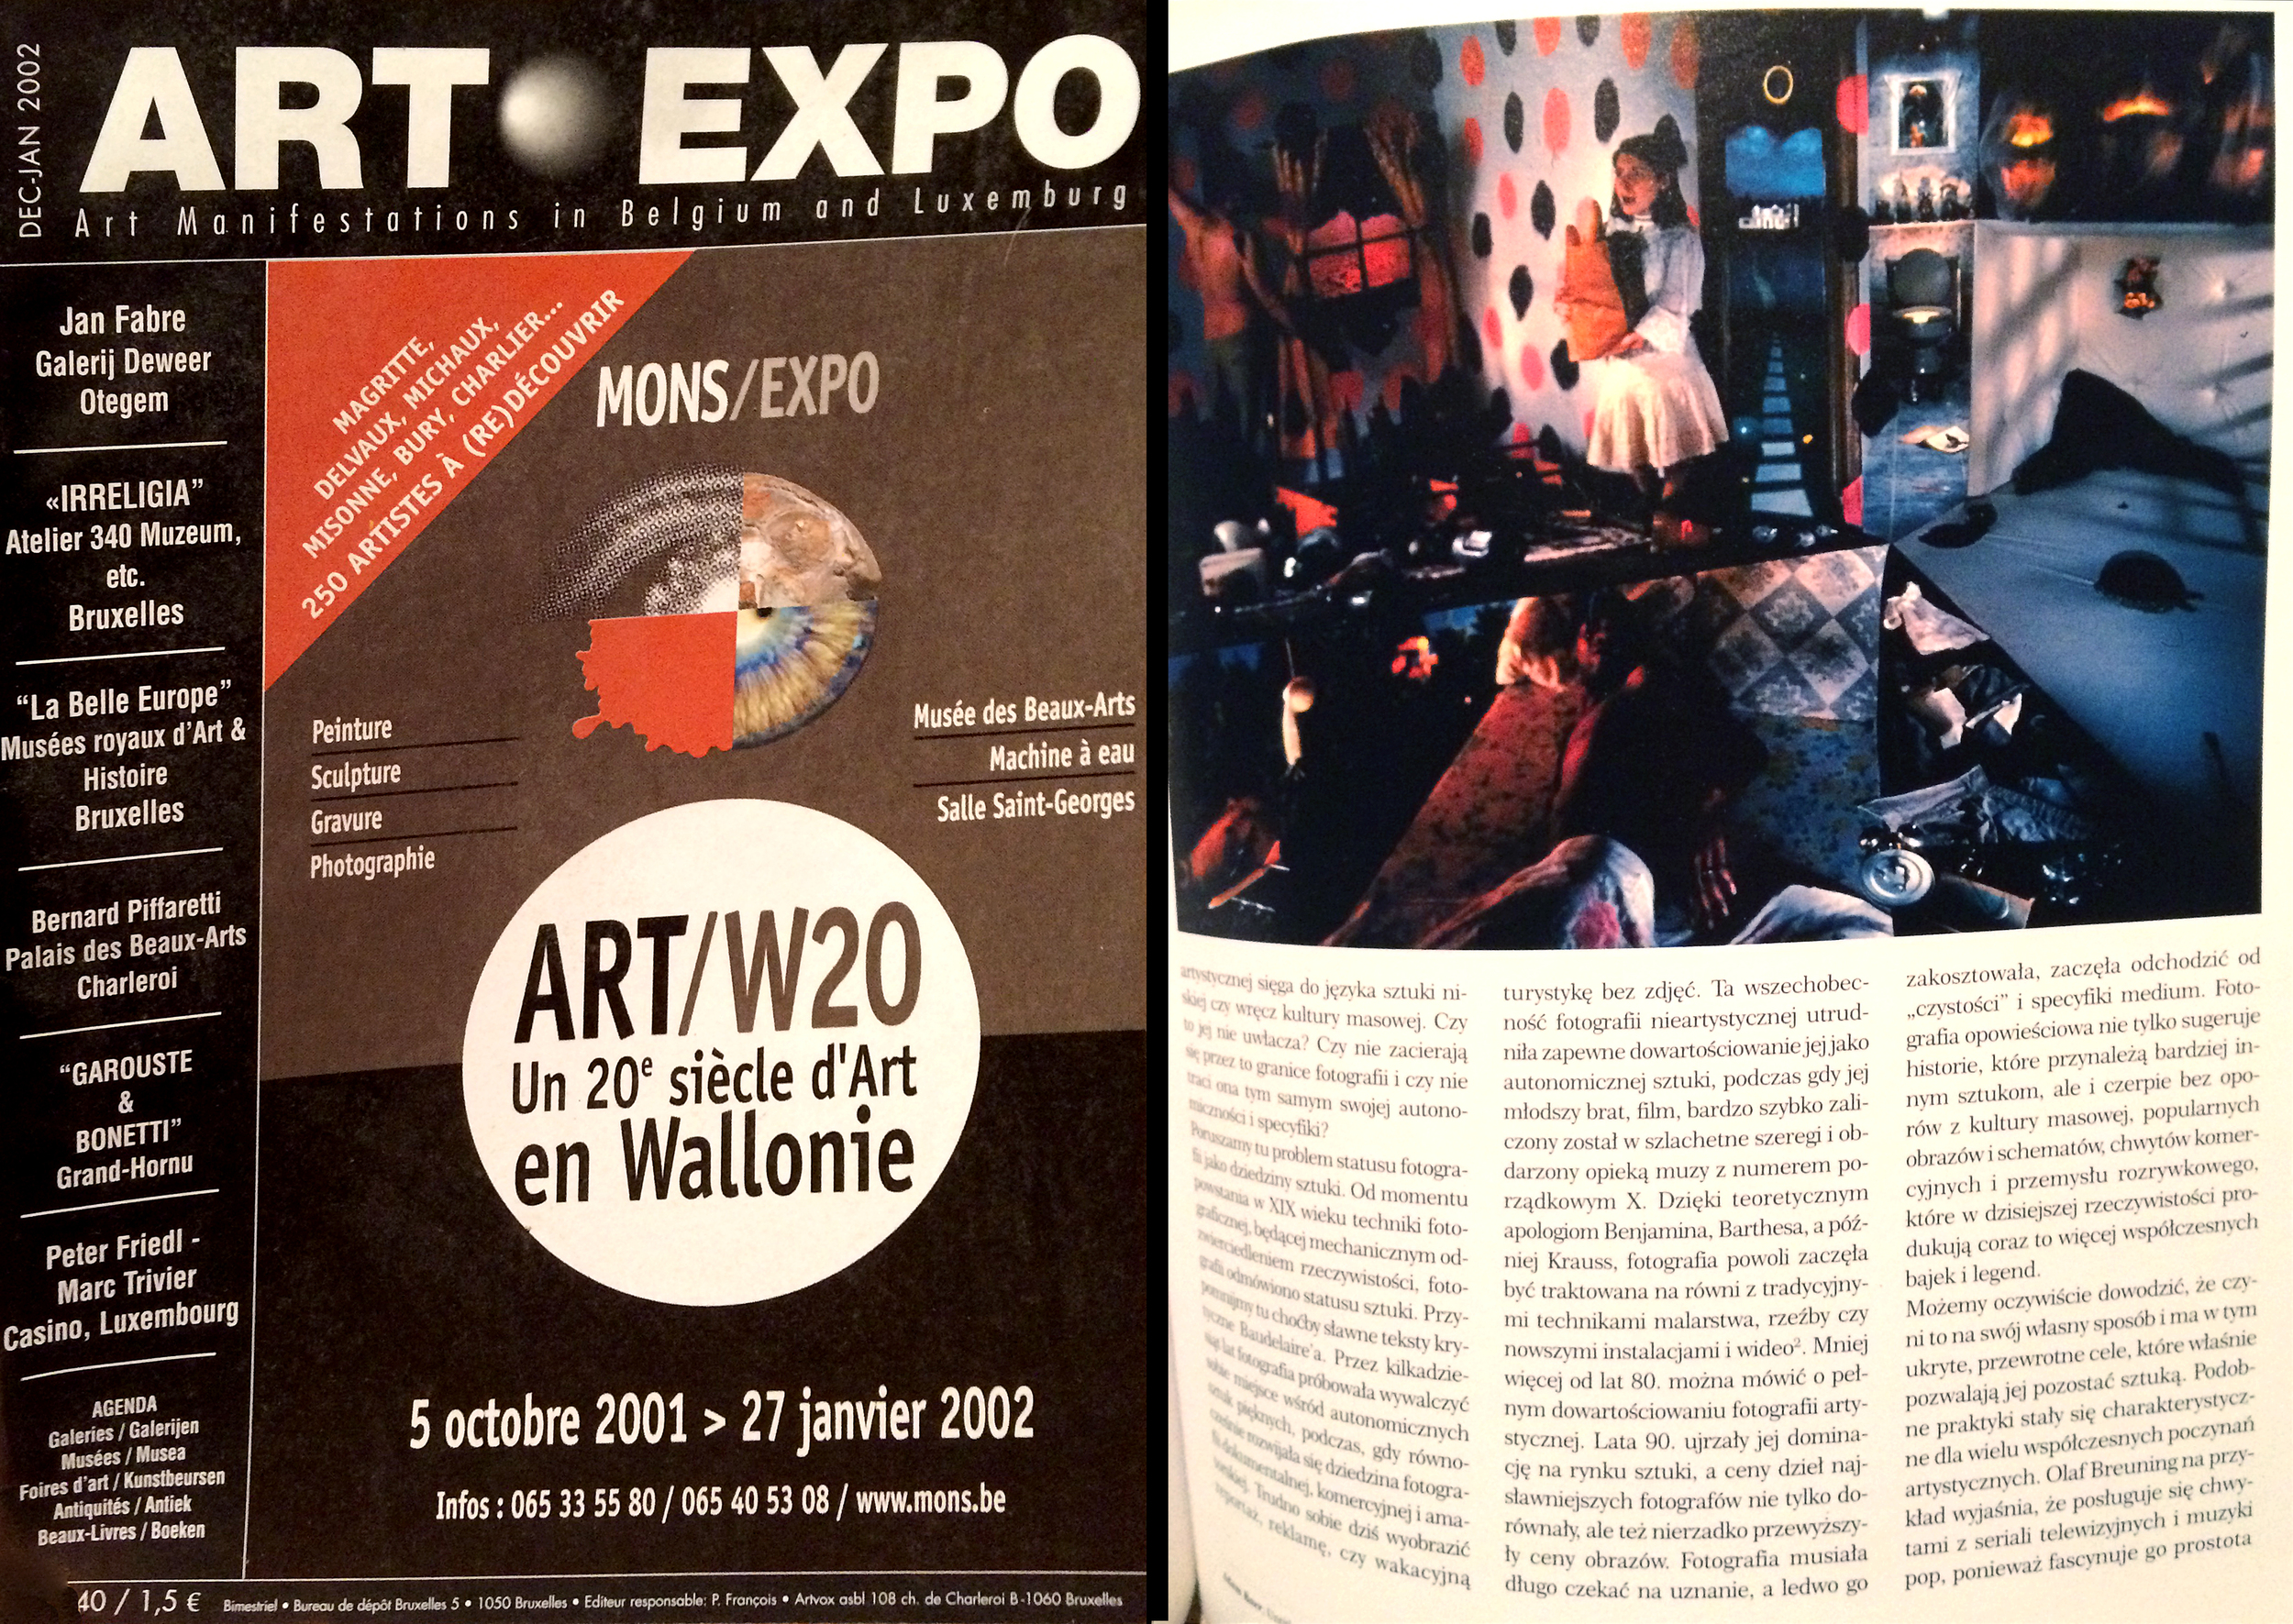 Art Expo Belgium 2002 copy.jpg